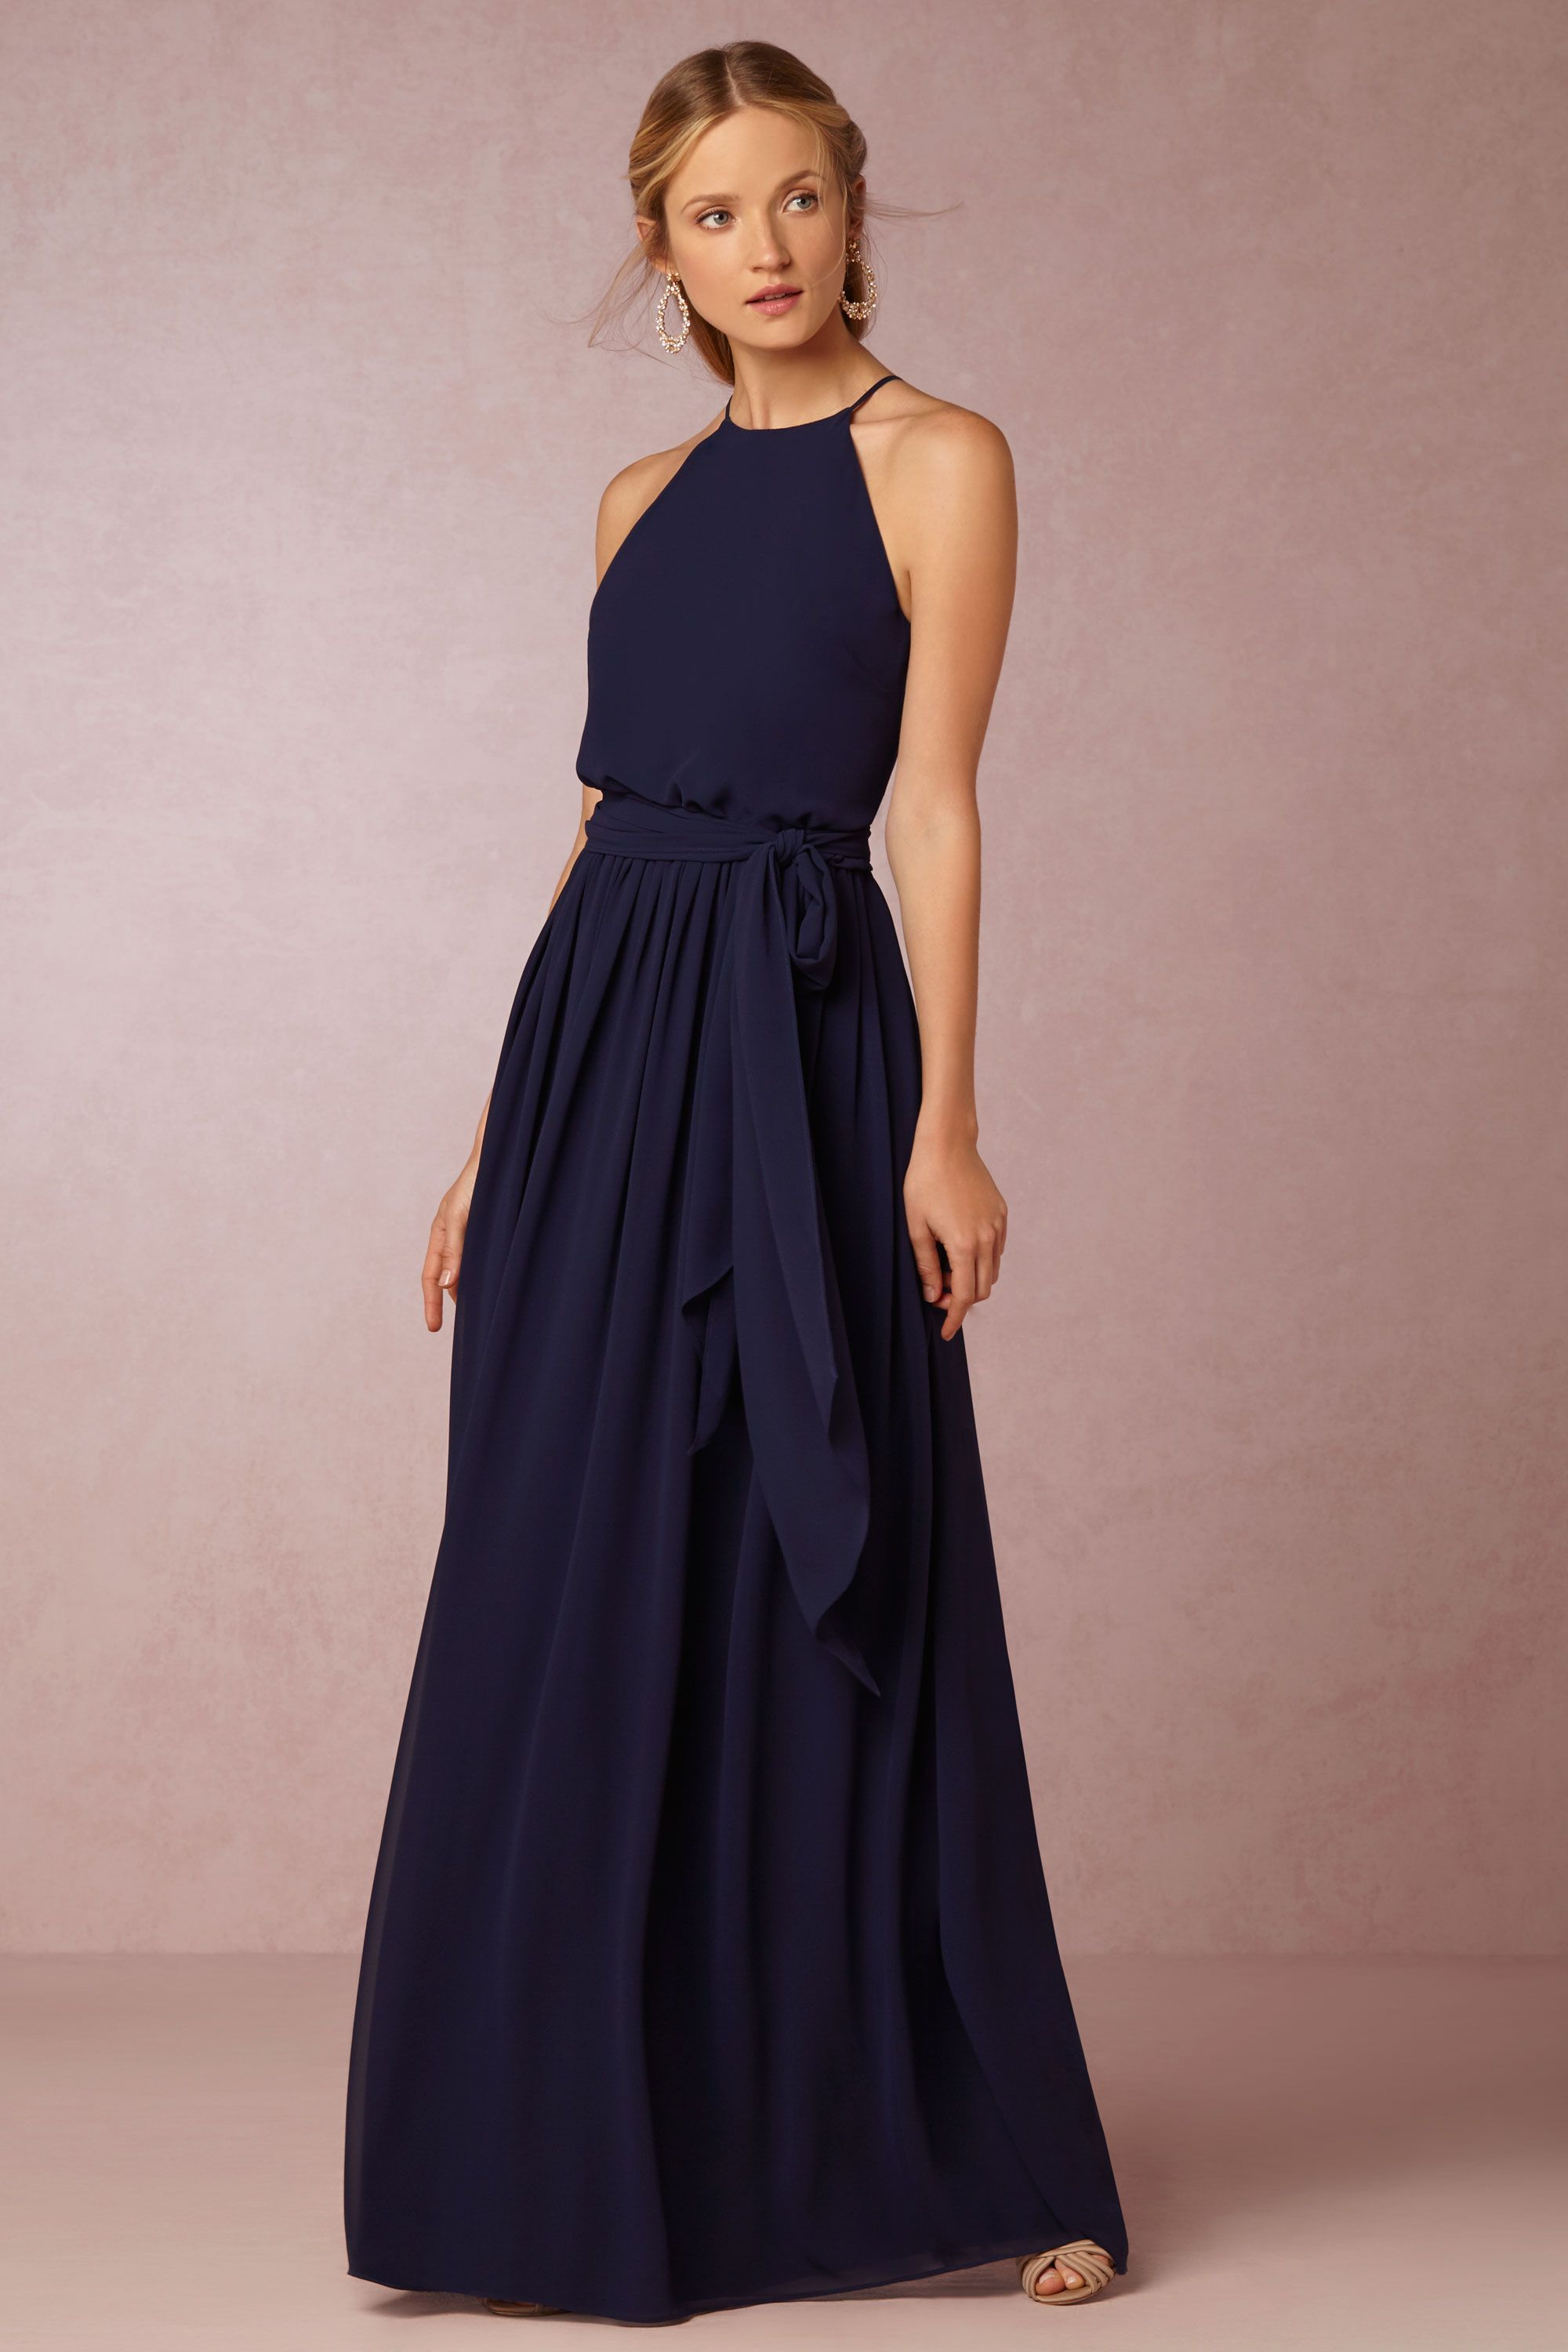 Alana Dress Navy blue bridesmaids Donna morgan and Navy blue